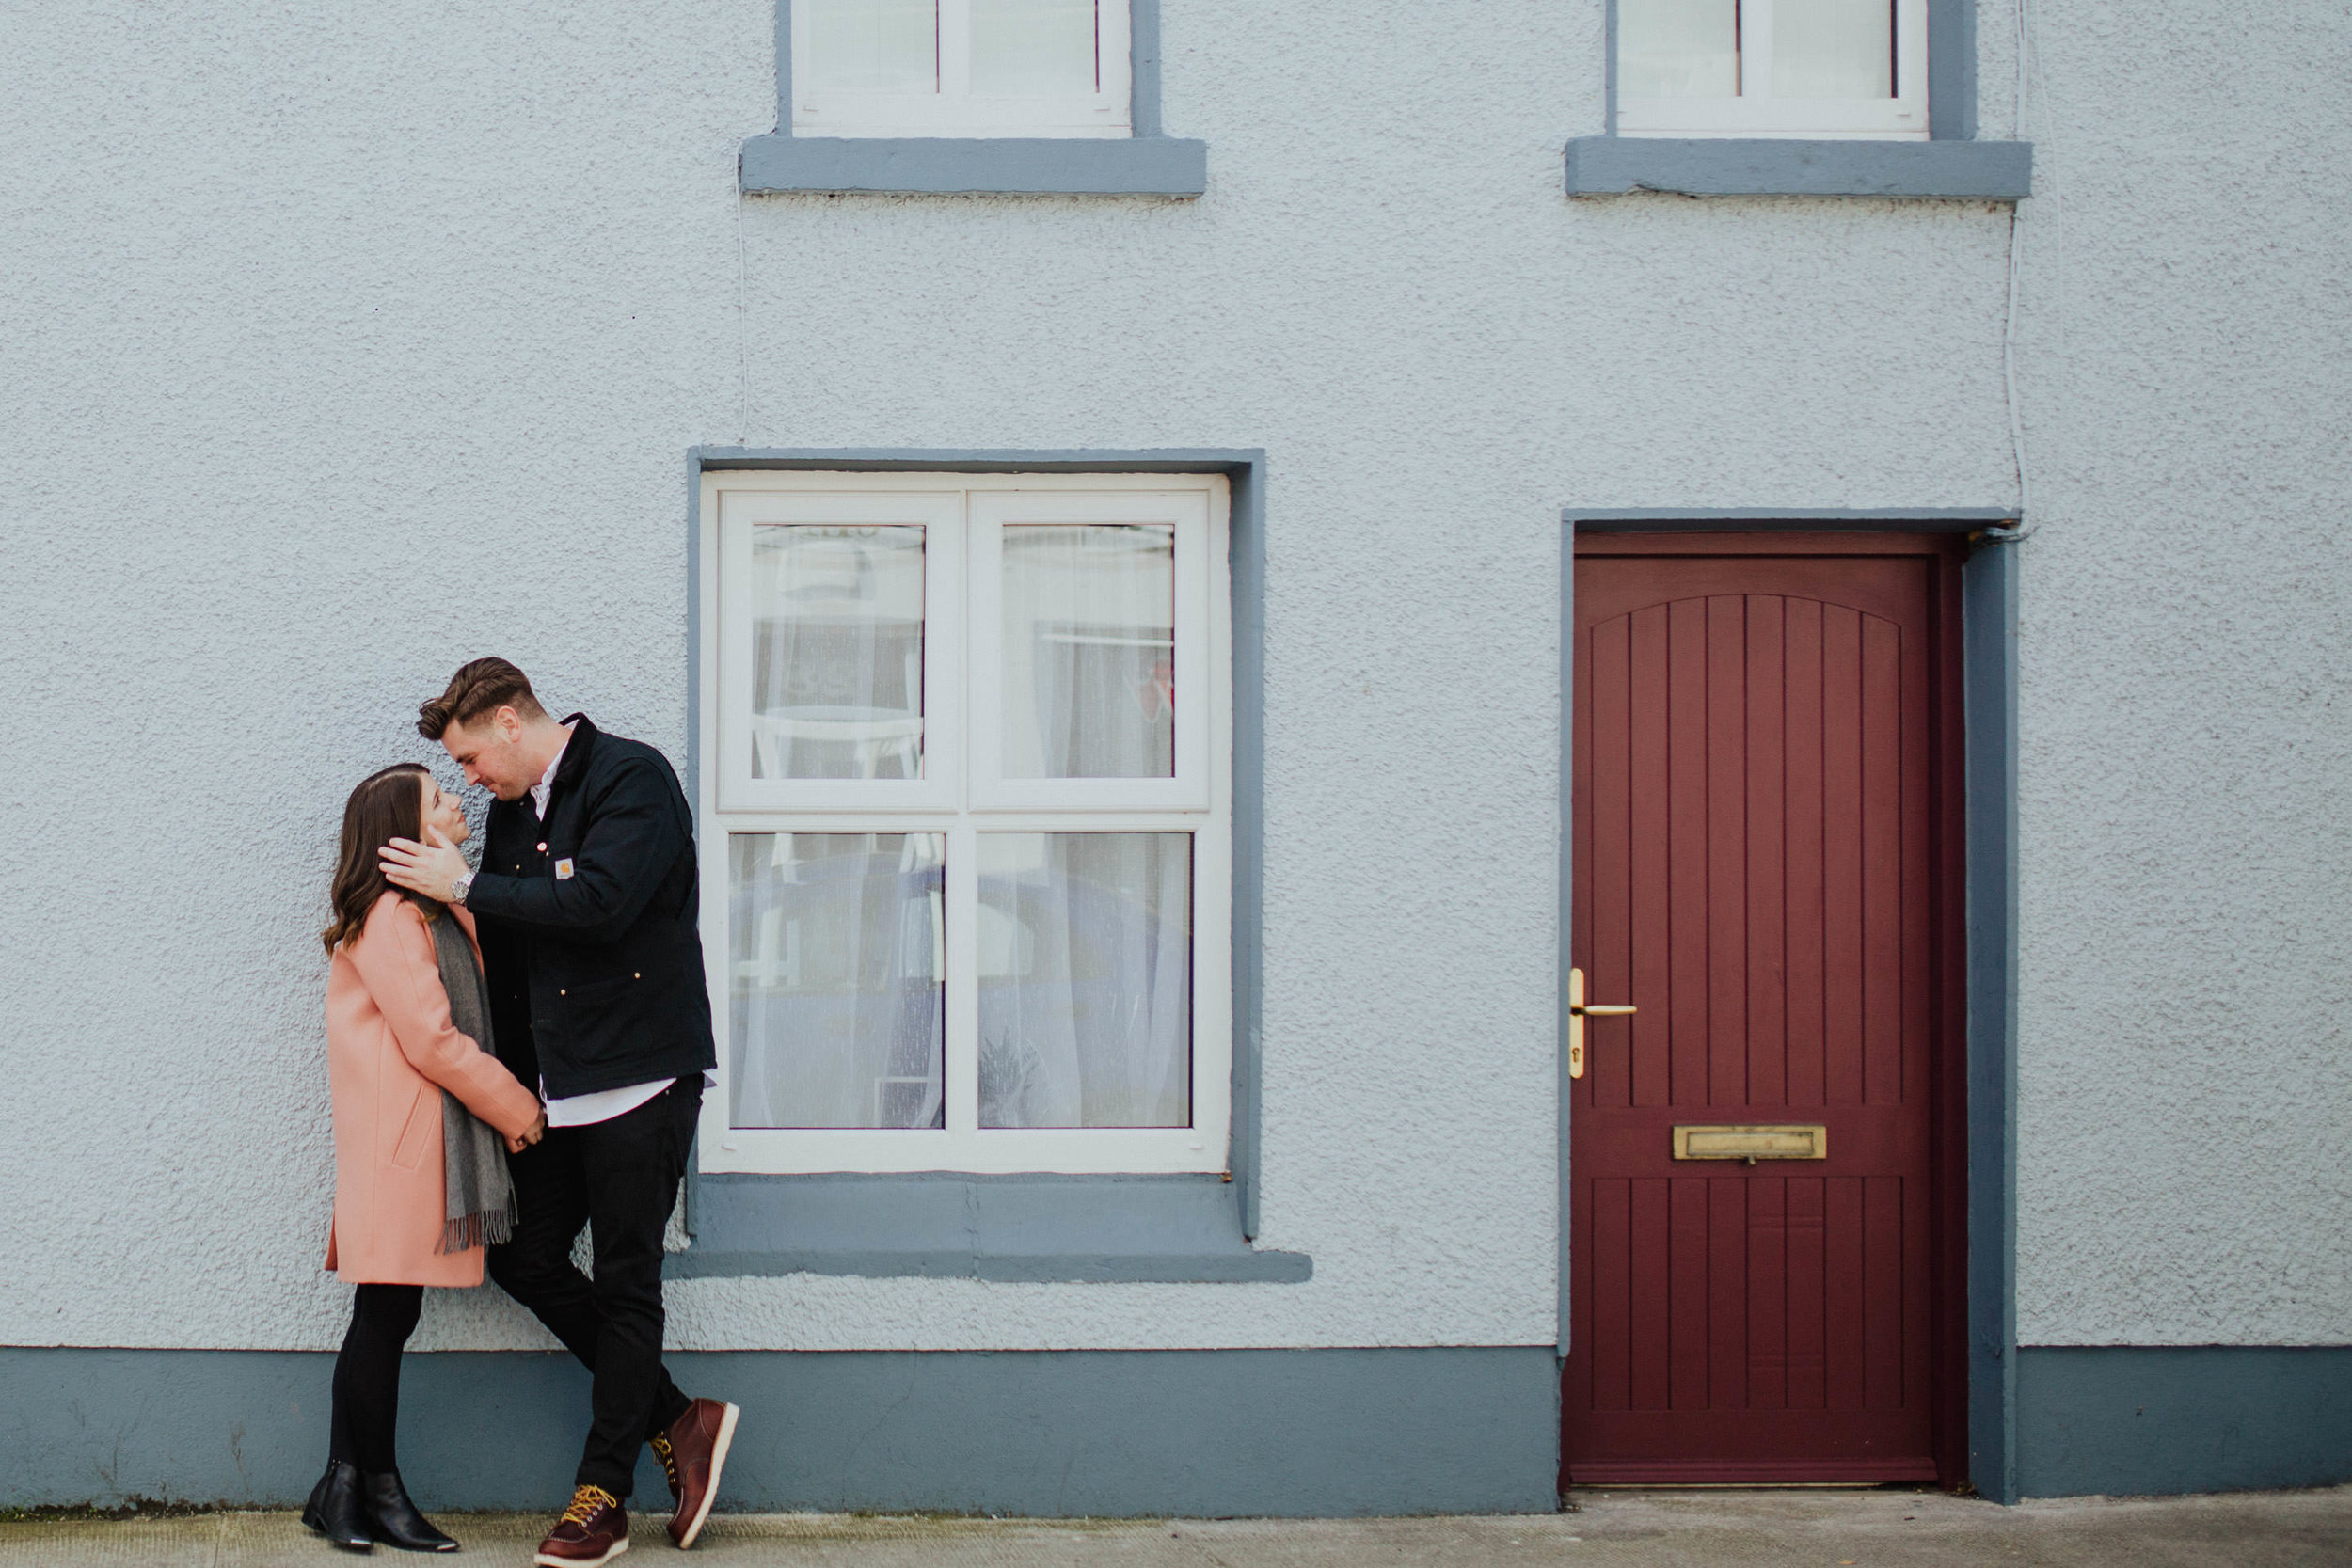 galway_city_engagement_photos_liviafigueiredo_65.jpg